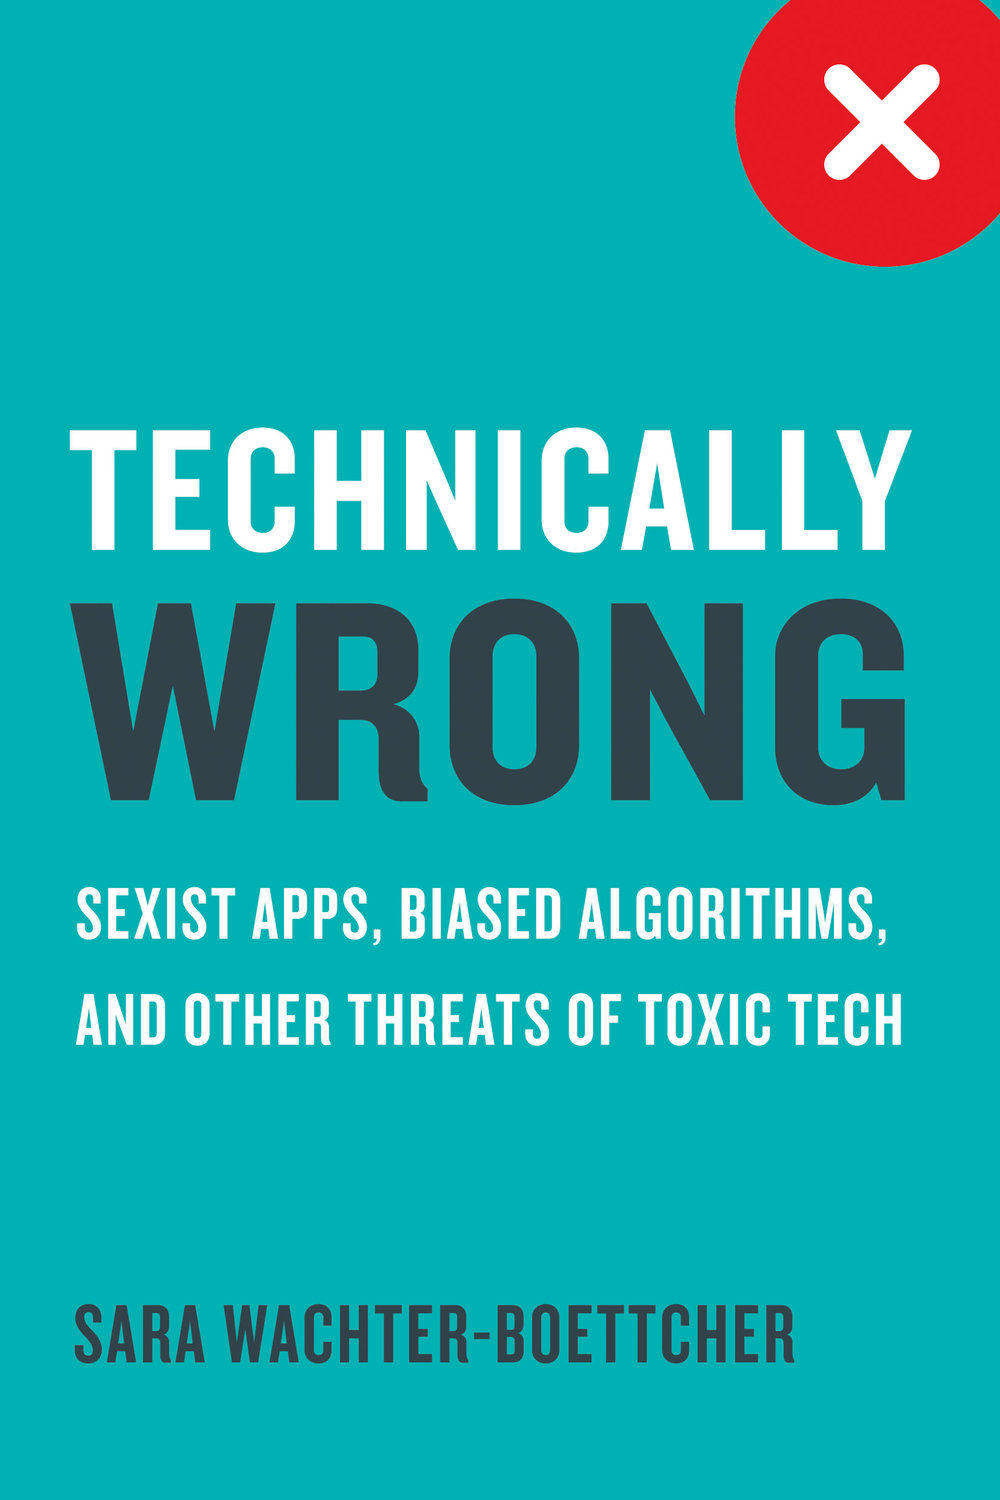 Technically Wrong_978-0-393-63463-1.jpg